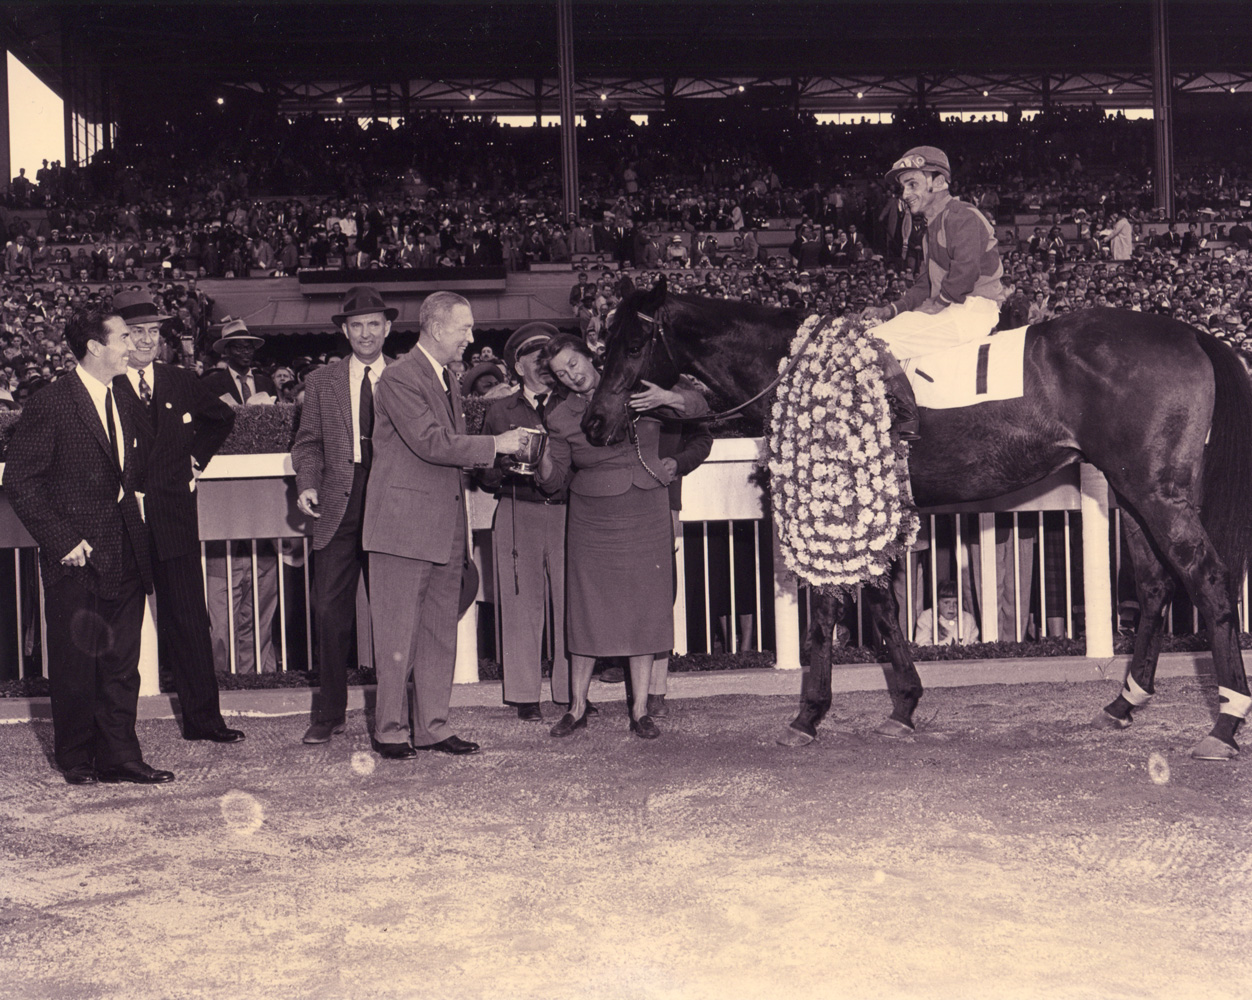 Ralph Neves and Cornhusker in the winner's circle for the 1957 Santa Anita Handicap (Santa Anita Photo/Museum Collection)